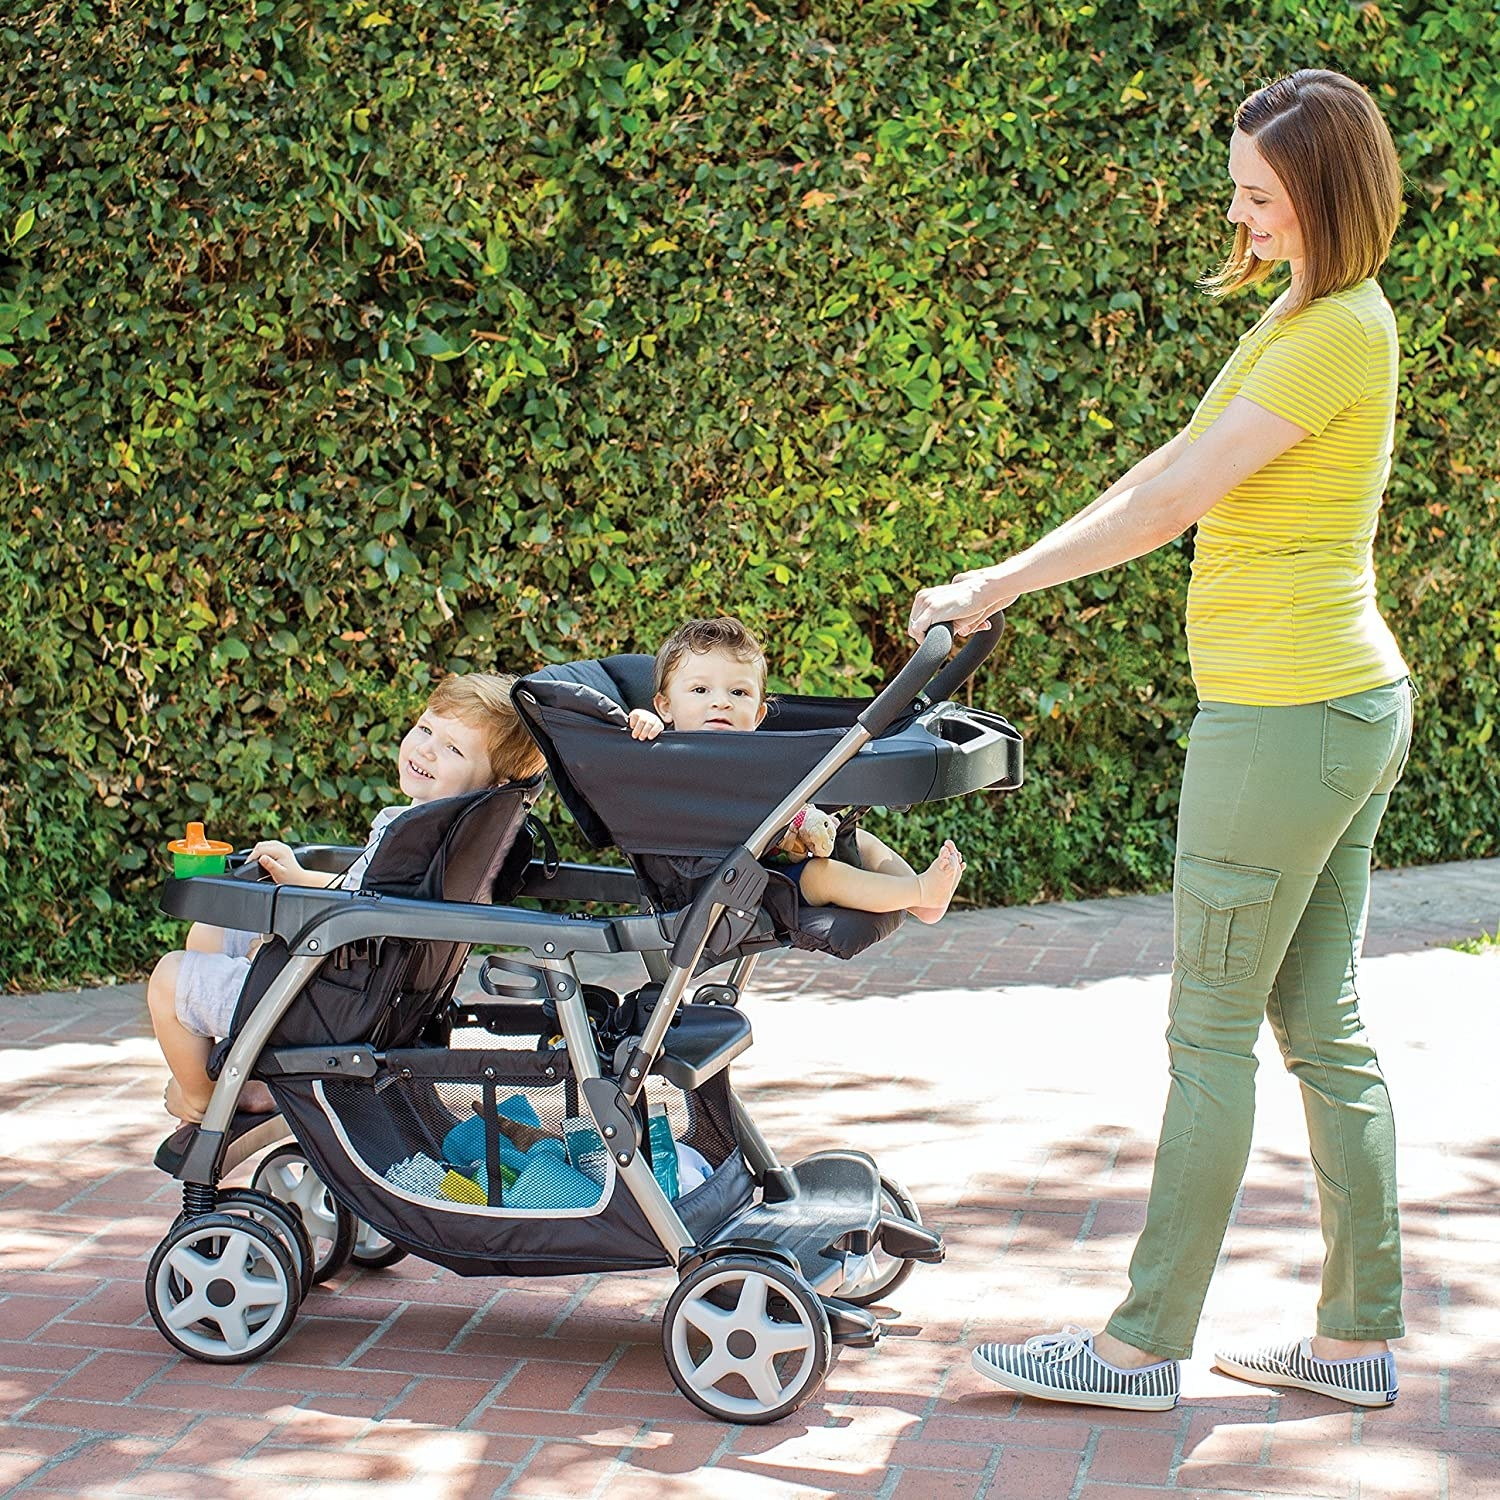 A parent pushing two kids in the double stroller